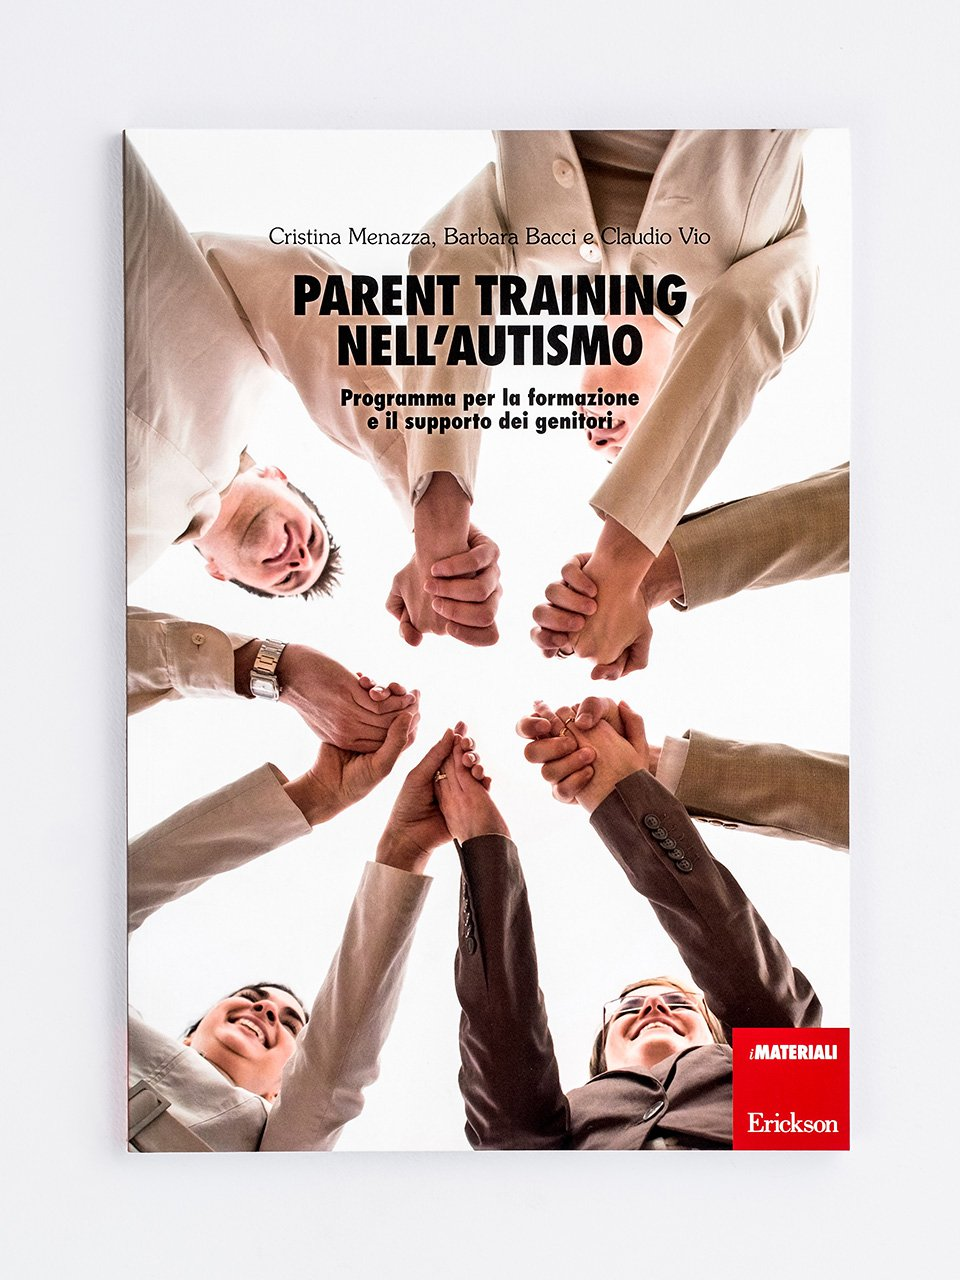 Parent training nell'autismo - Come facilitare una Family group conference - Libri - Erickson